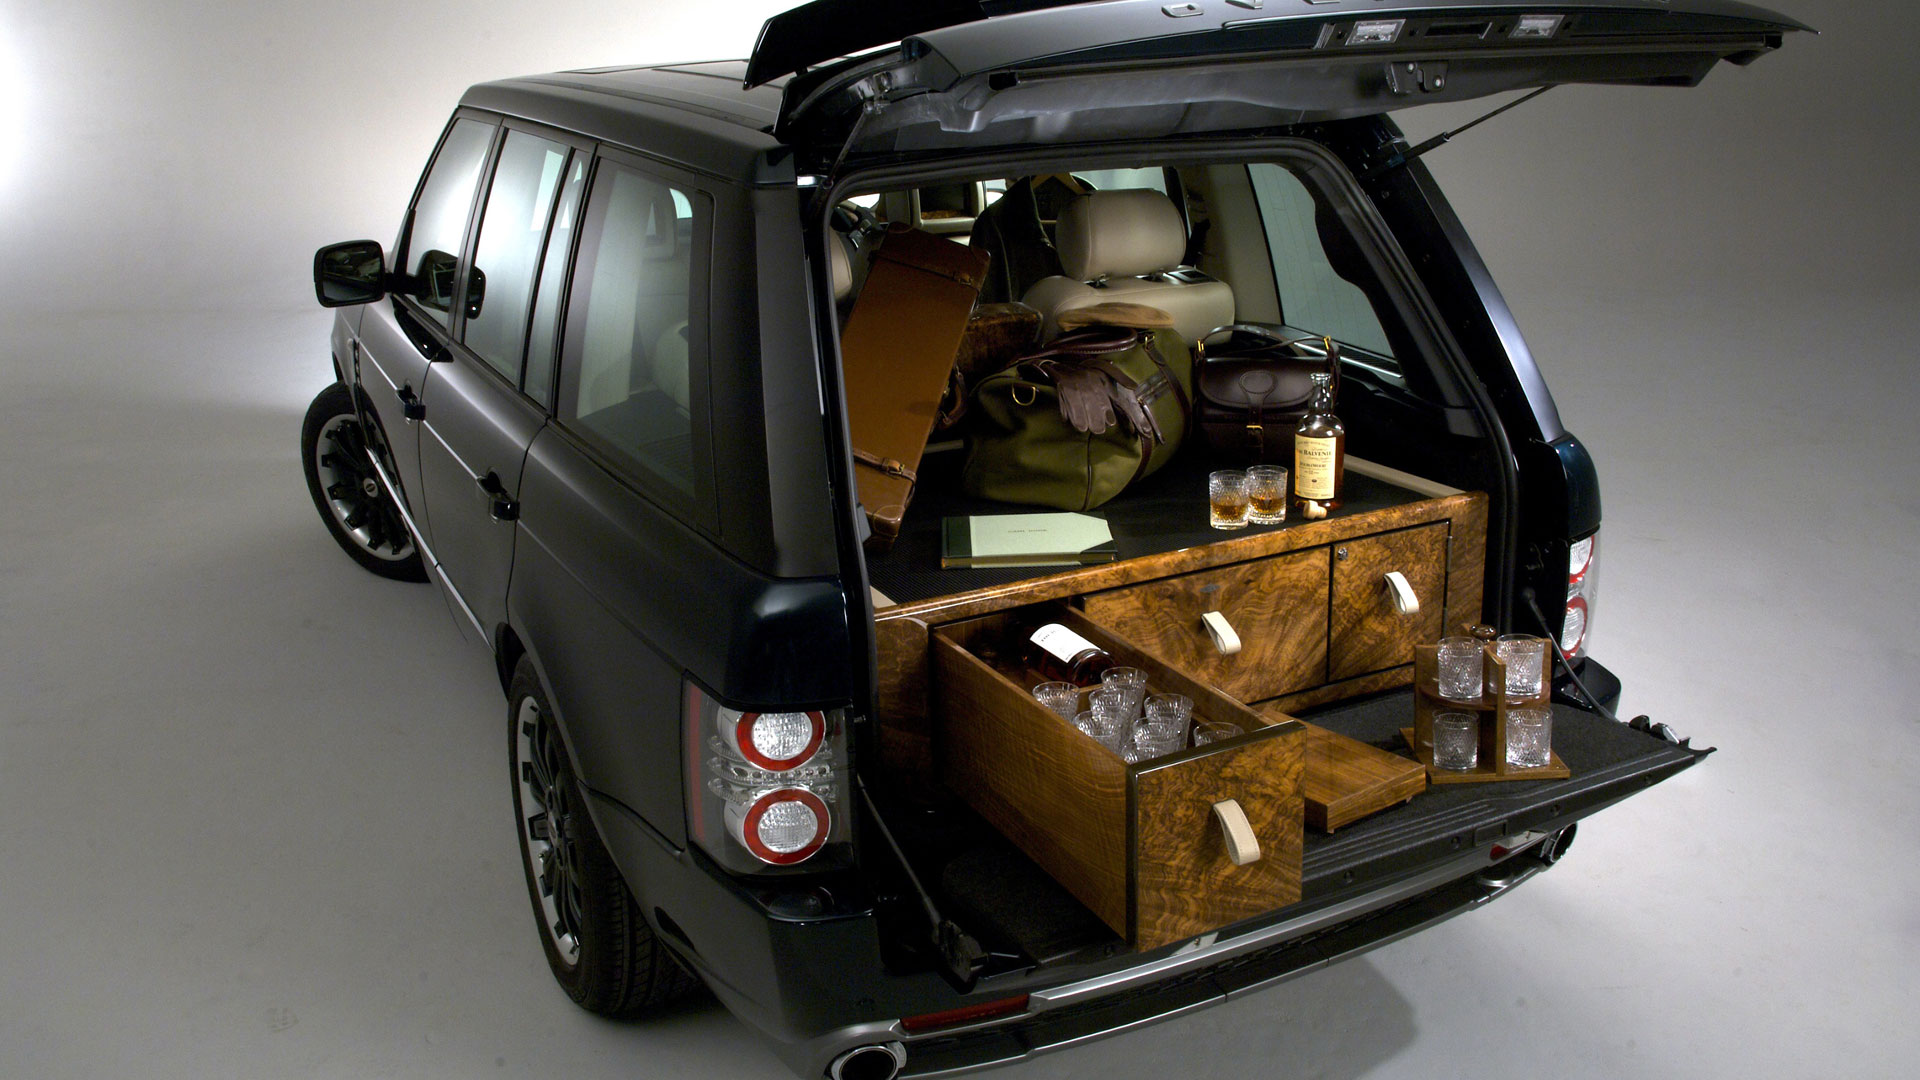 The craziest car options and accessories